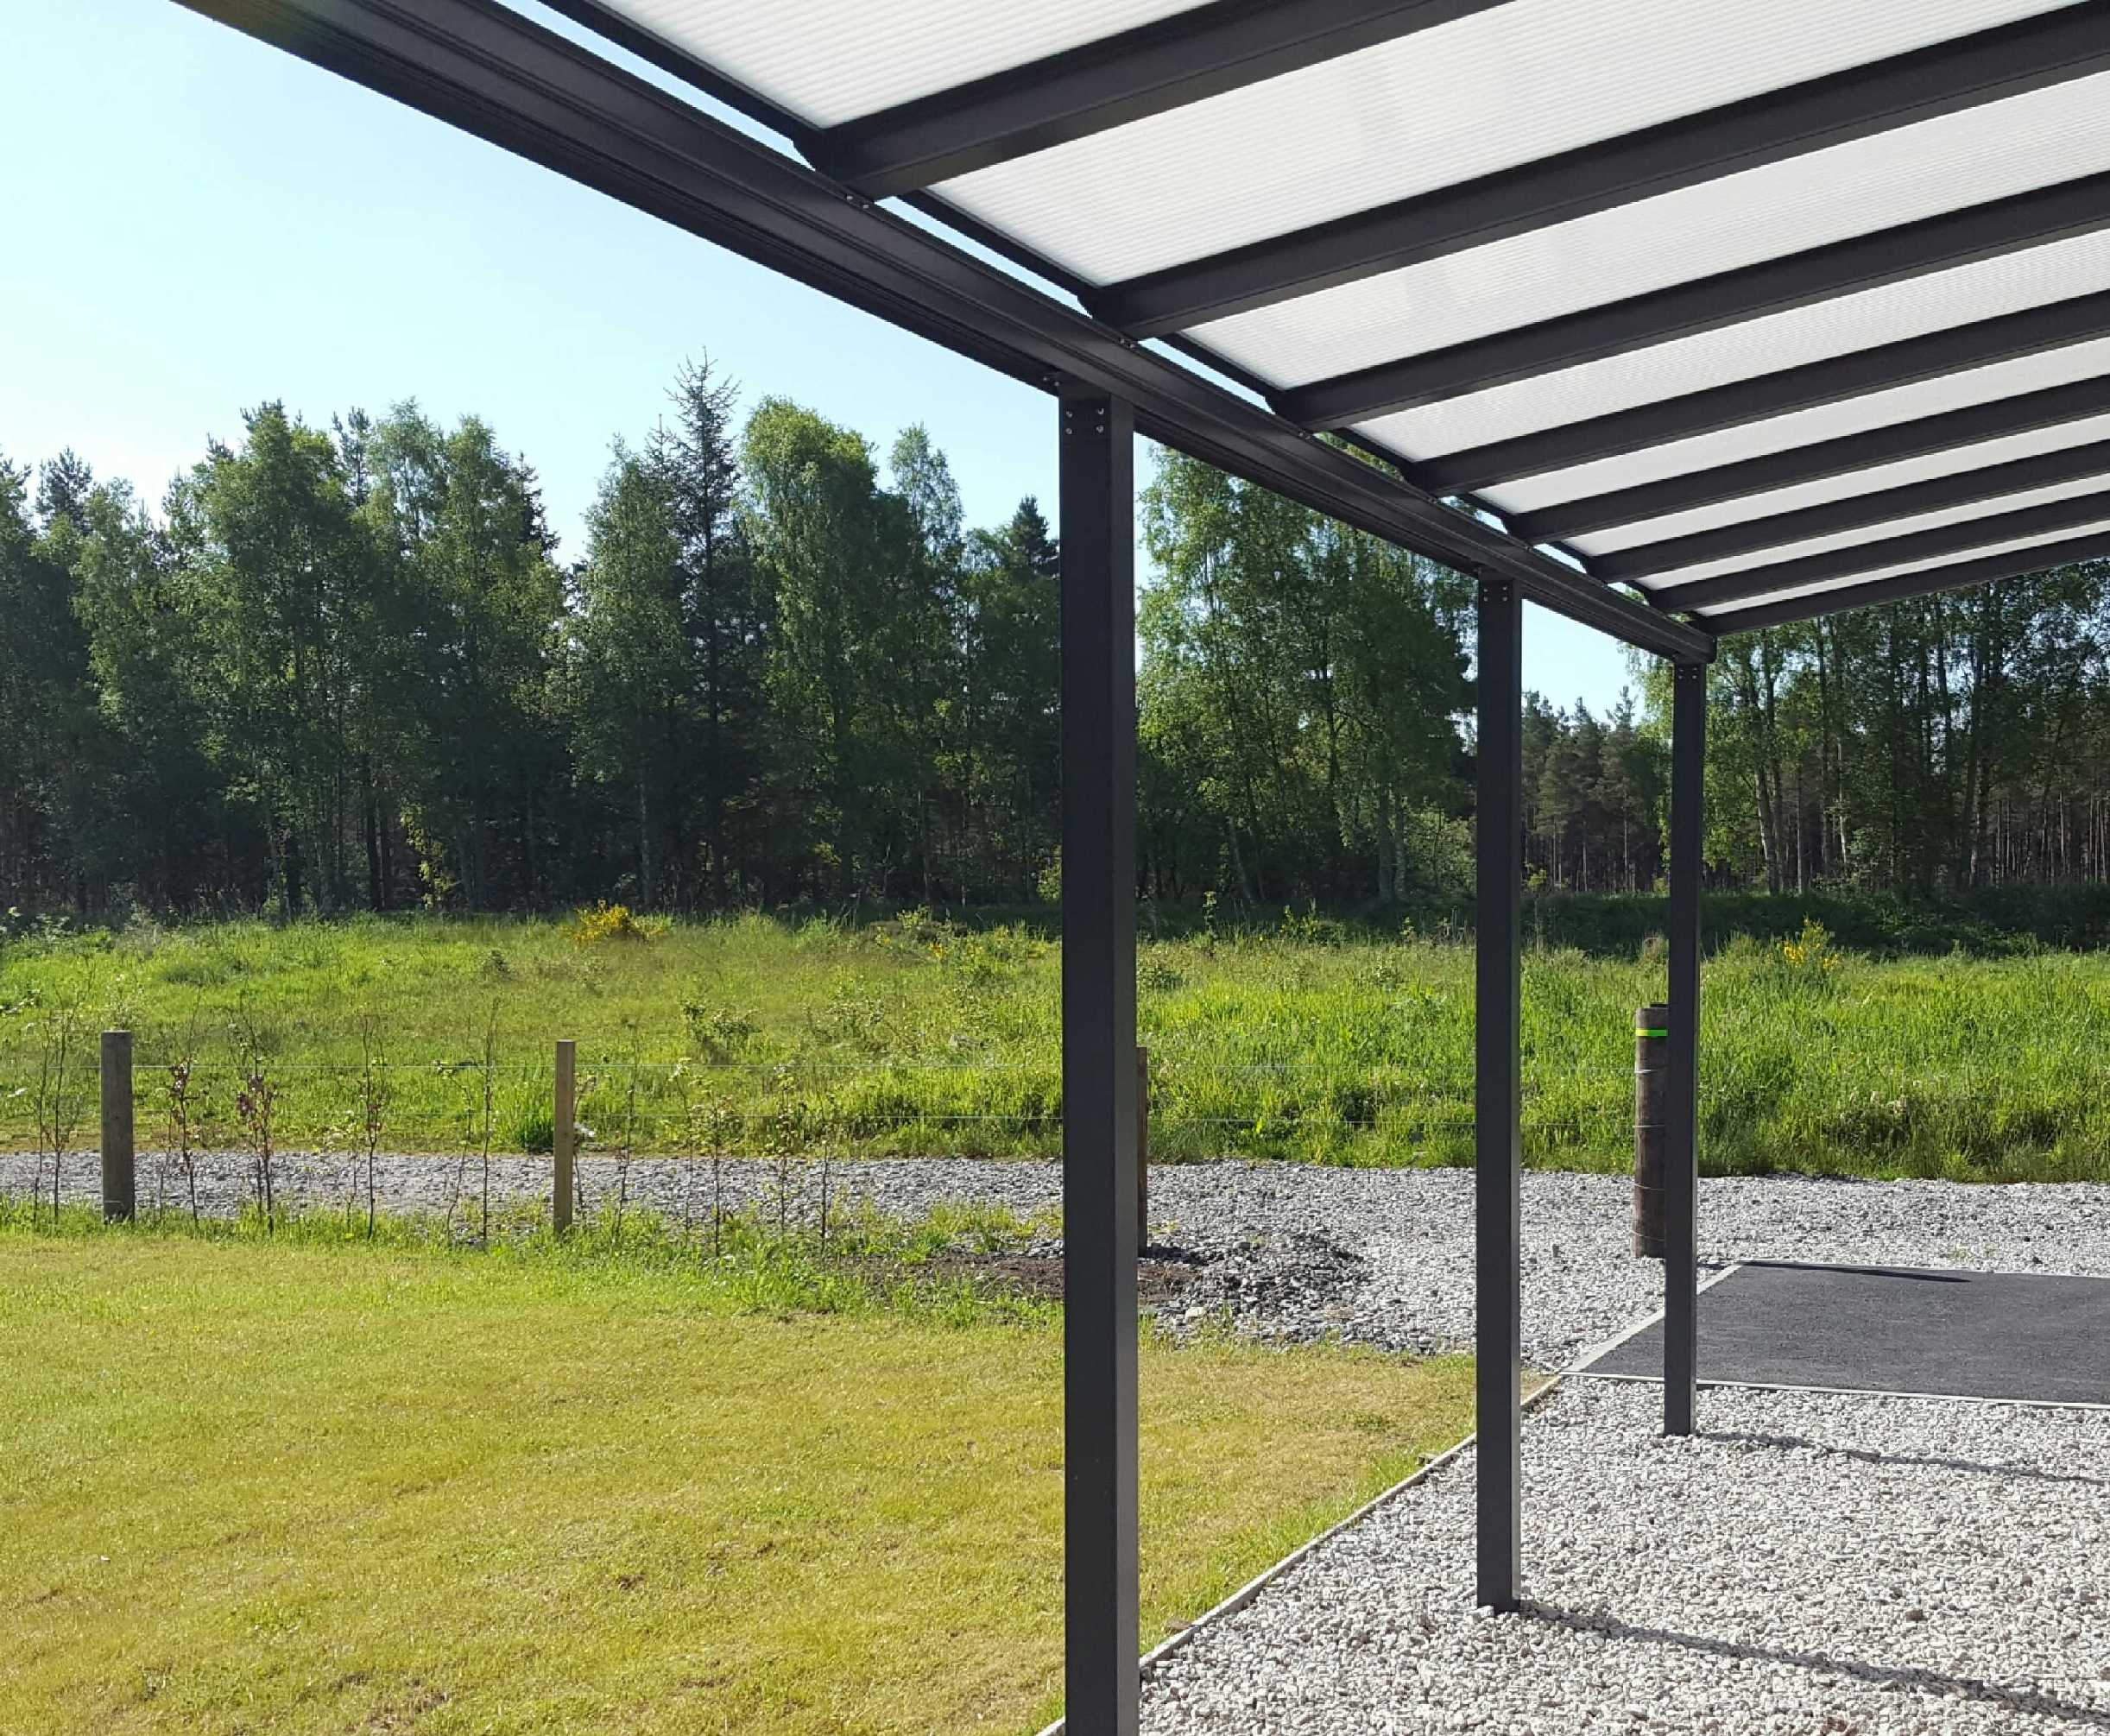 Omega Smart Lean-To Canopy, Anthracite Grey, 16mm Polycarbonate Glazing - 8.4m (W) x 4.5m (P), (4) Supporting Posts